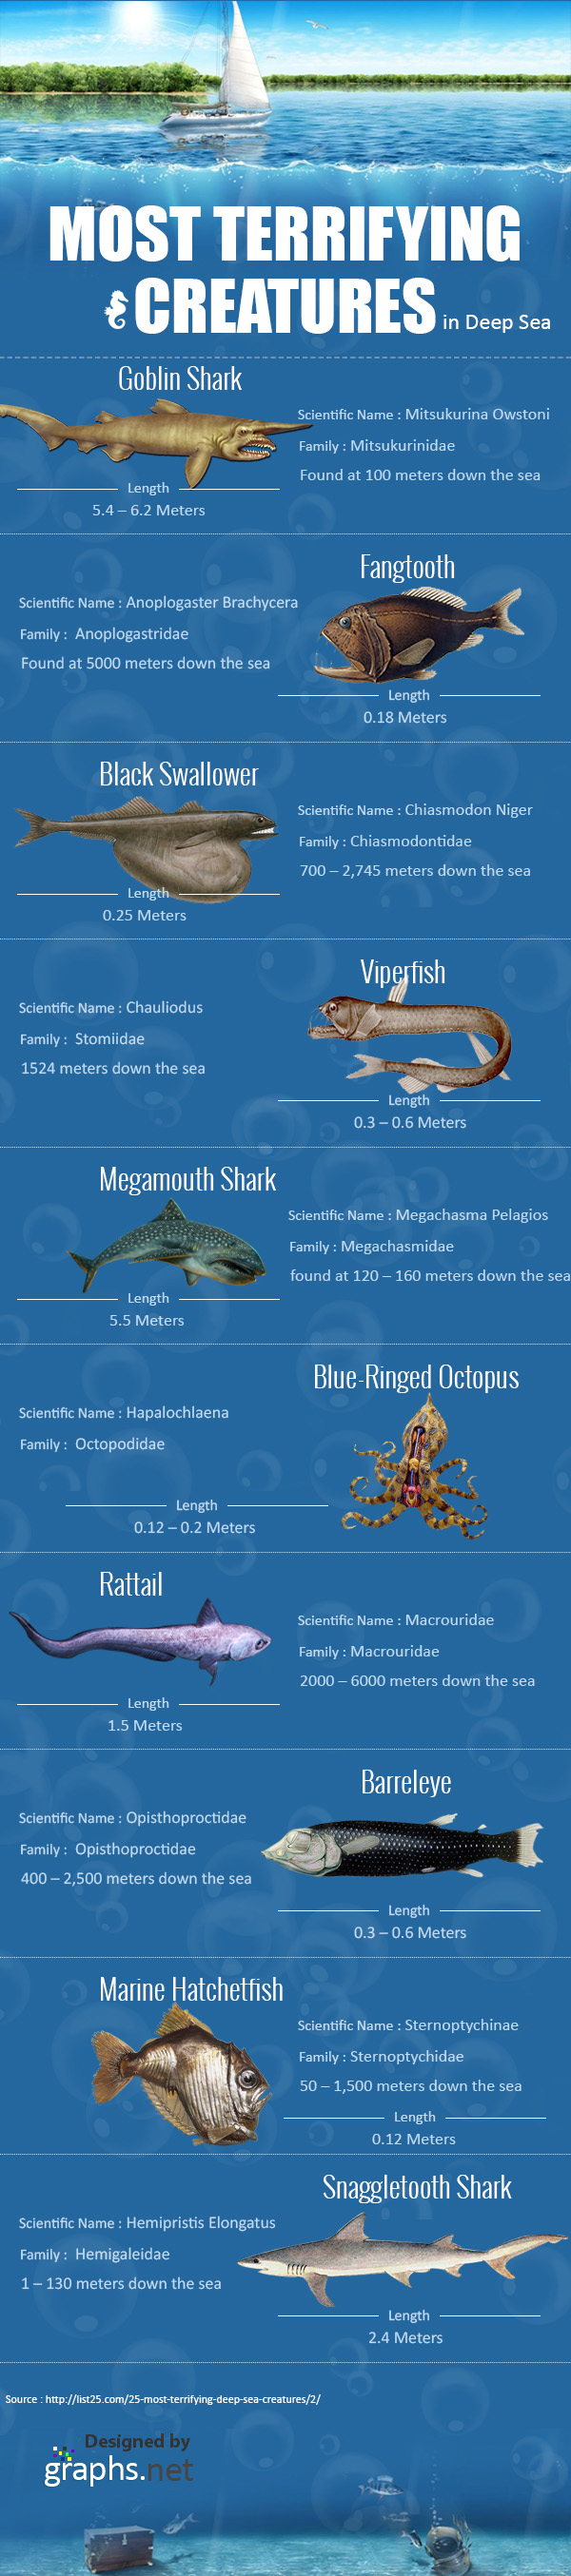 Infographic - Most-Terrifying-Creatures-in-Deep-Sea